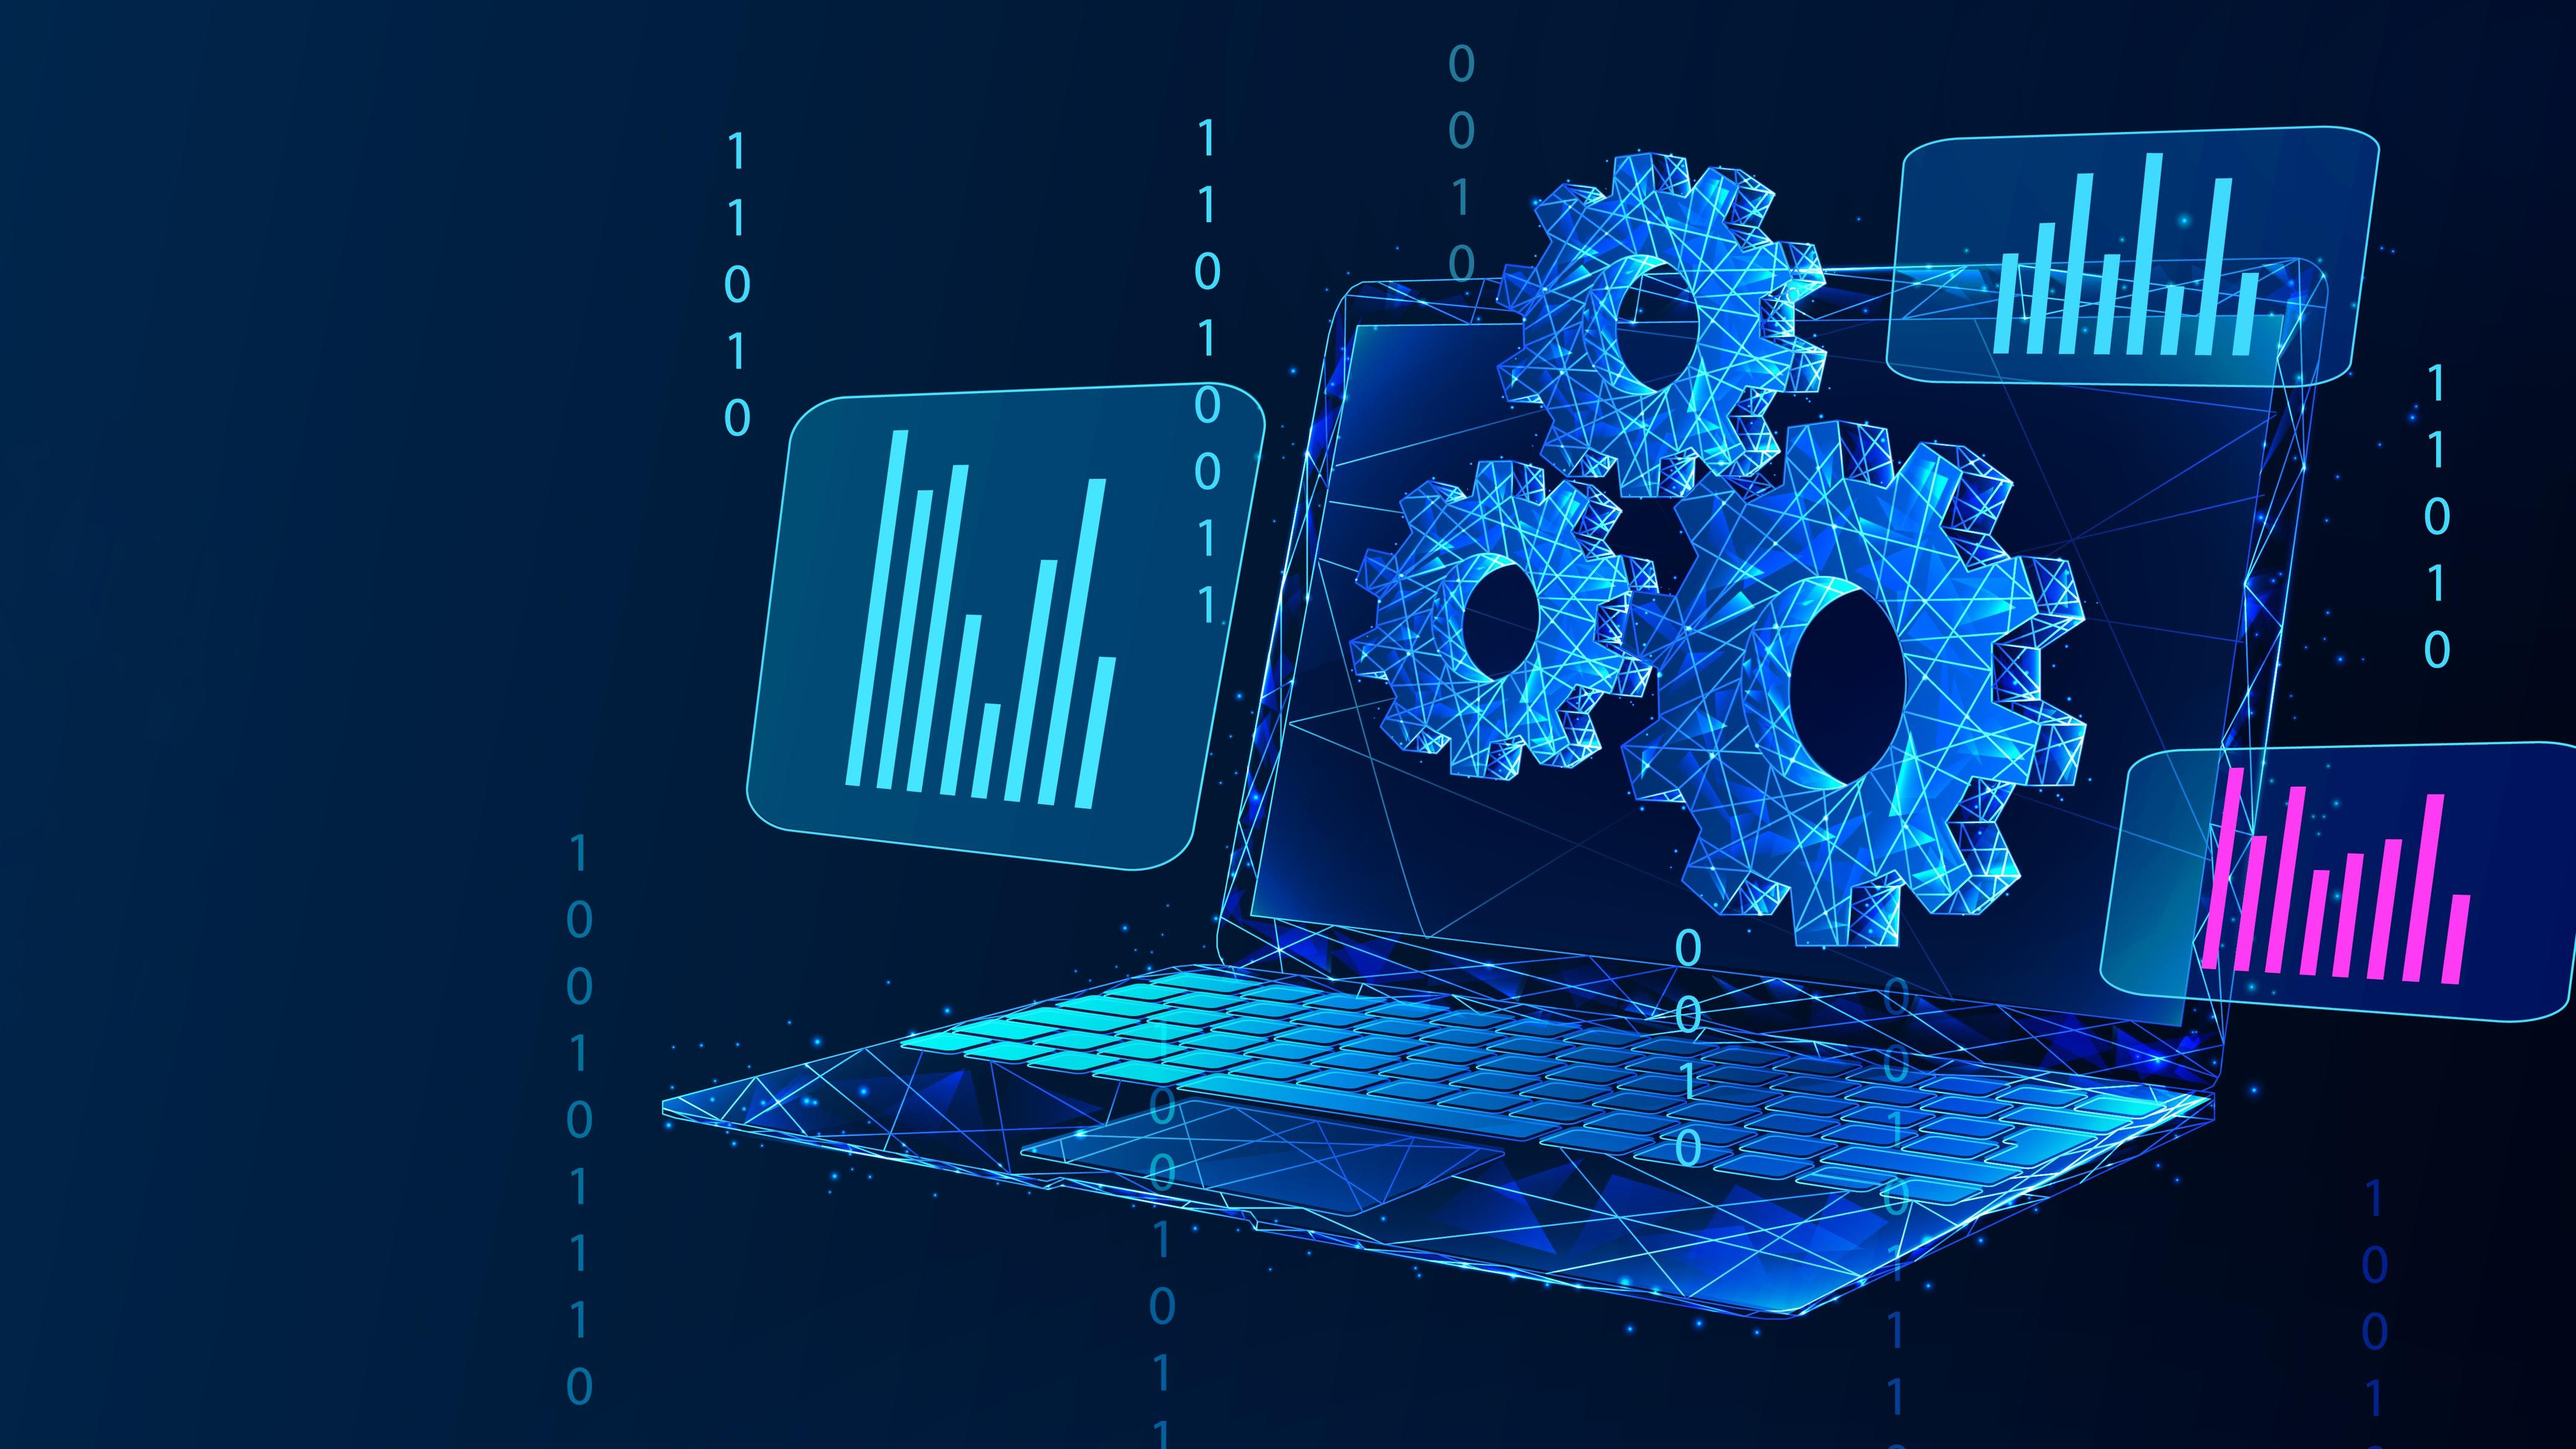 blue laptop with three cogs in front of the screen and bar charts